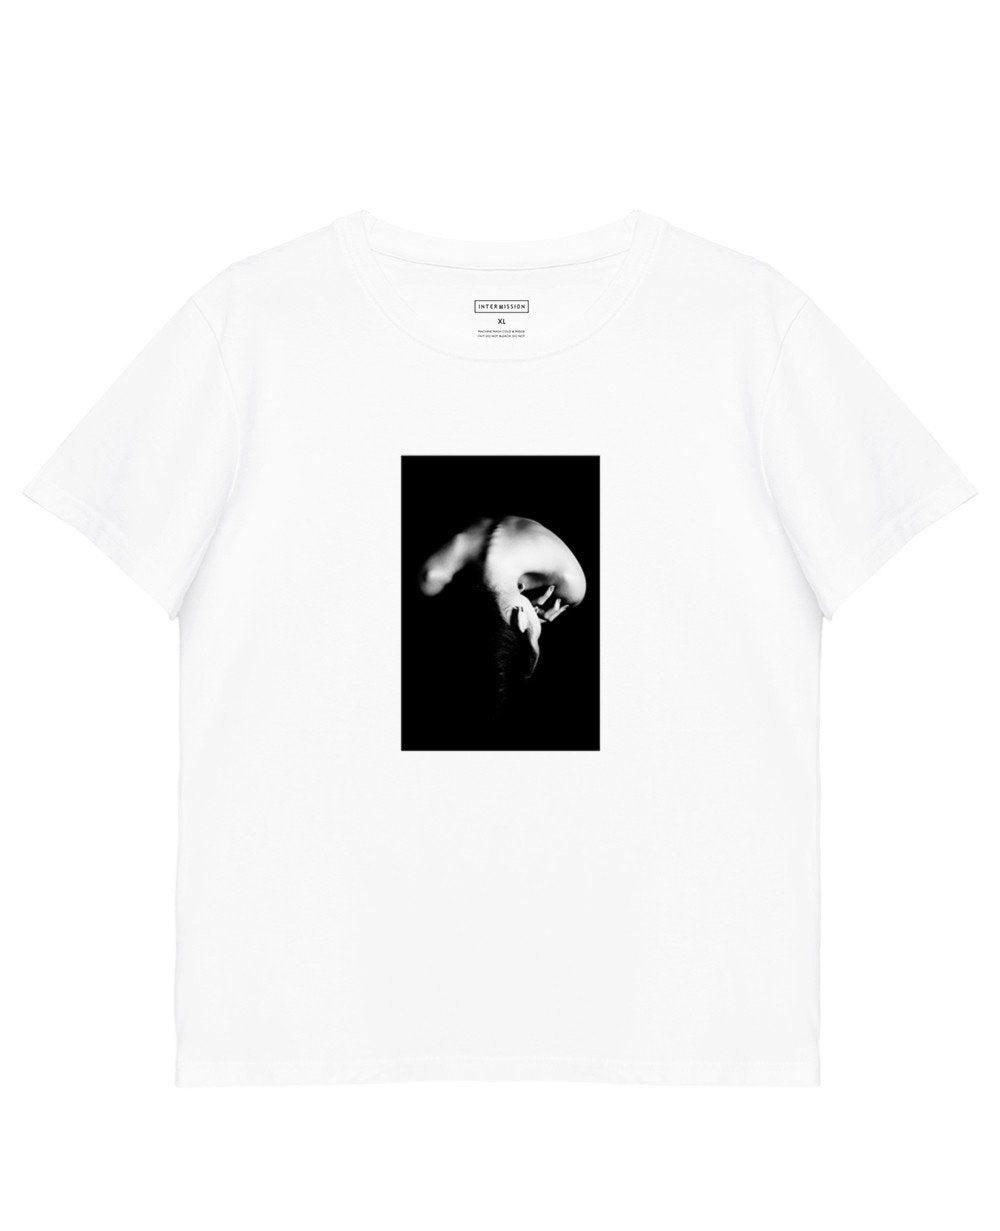 Printed T-Shirt in White - T-Shirts - INTERMISSION - BRANMA